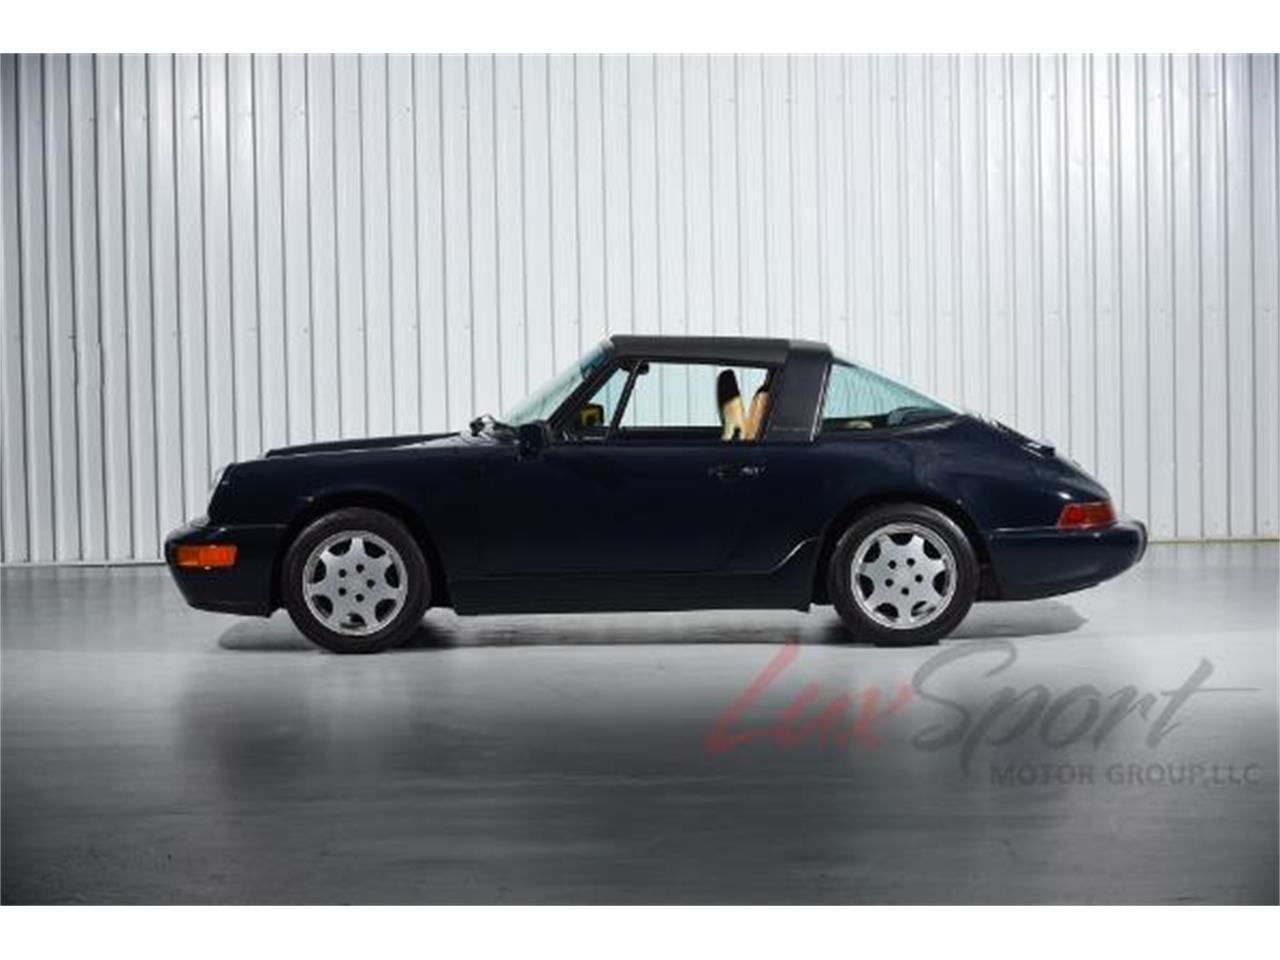 Large Picture of 1990 Porsche 964 Carrera 2 Targa located in New Hyde Park New York - $59,995.00 - MNZP